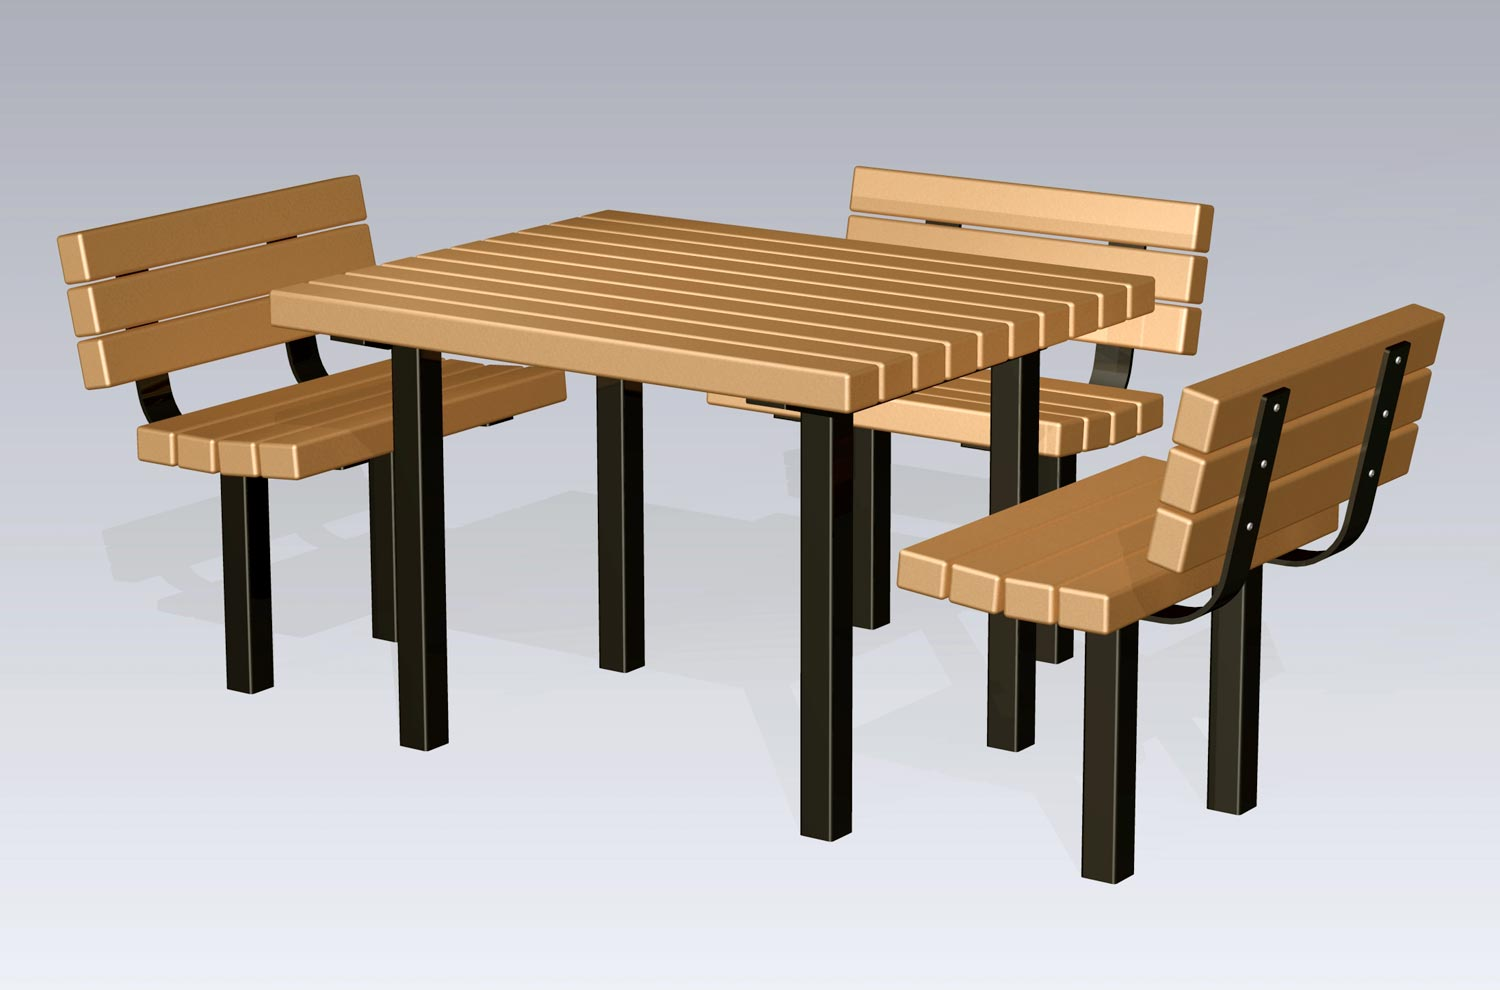 Tables And Chairs Clever Childrens Table And Chairs  : 2051 EW from jpixphotography.com size 1500 x 990 jpeg 94kB